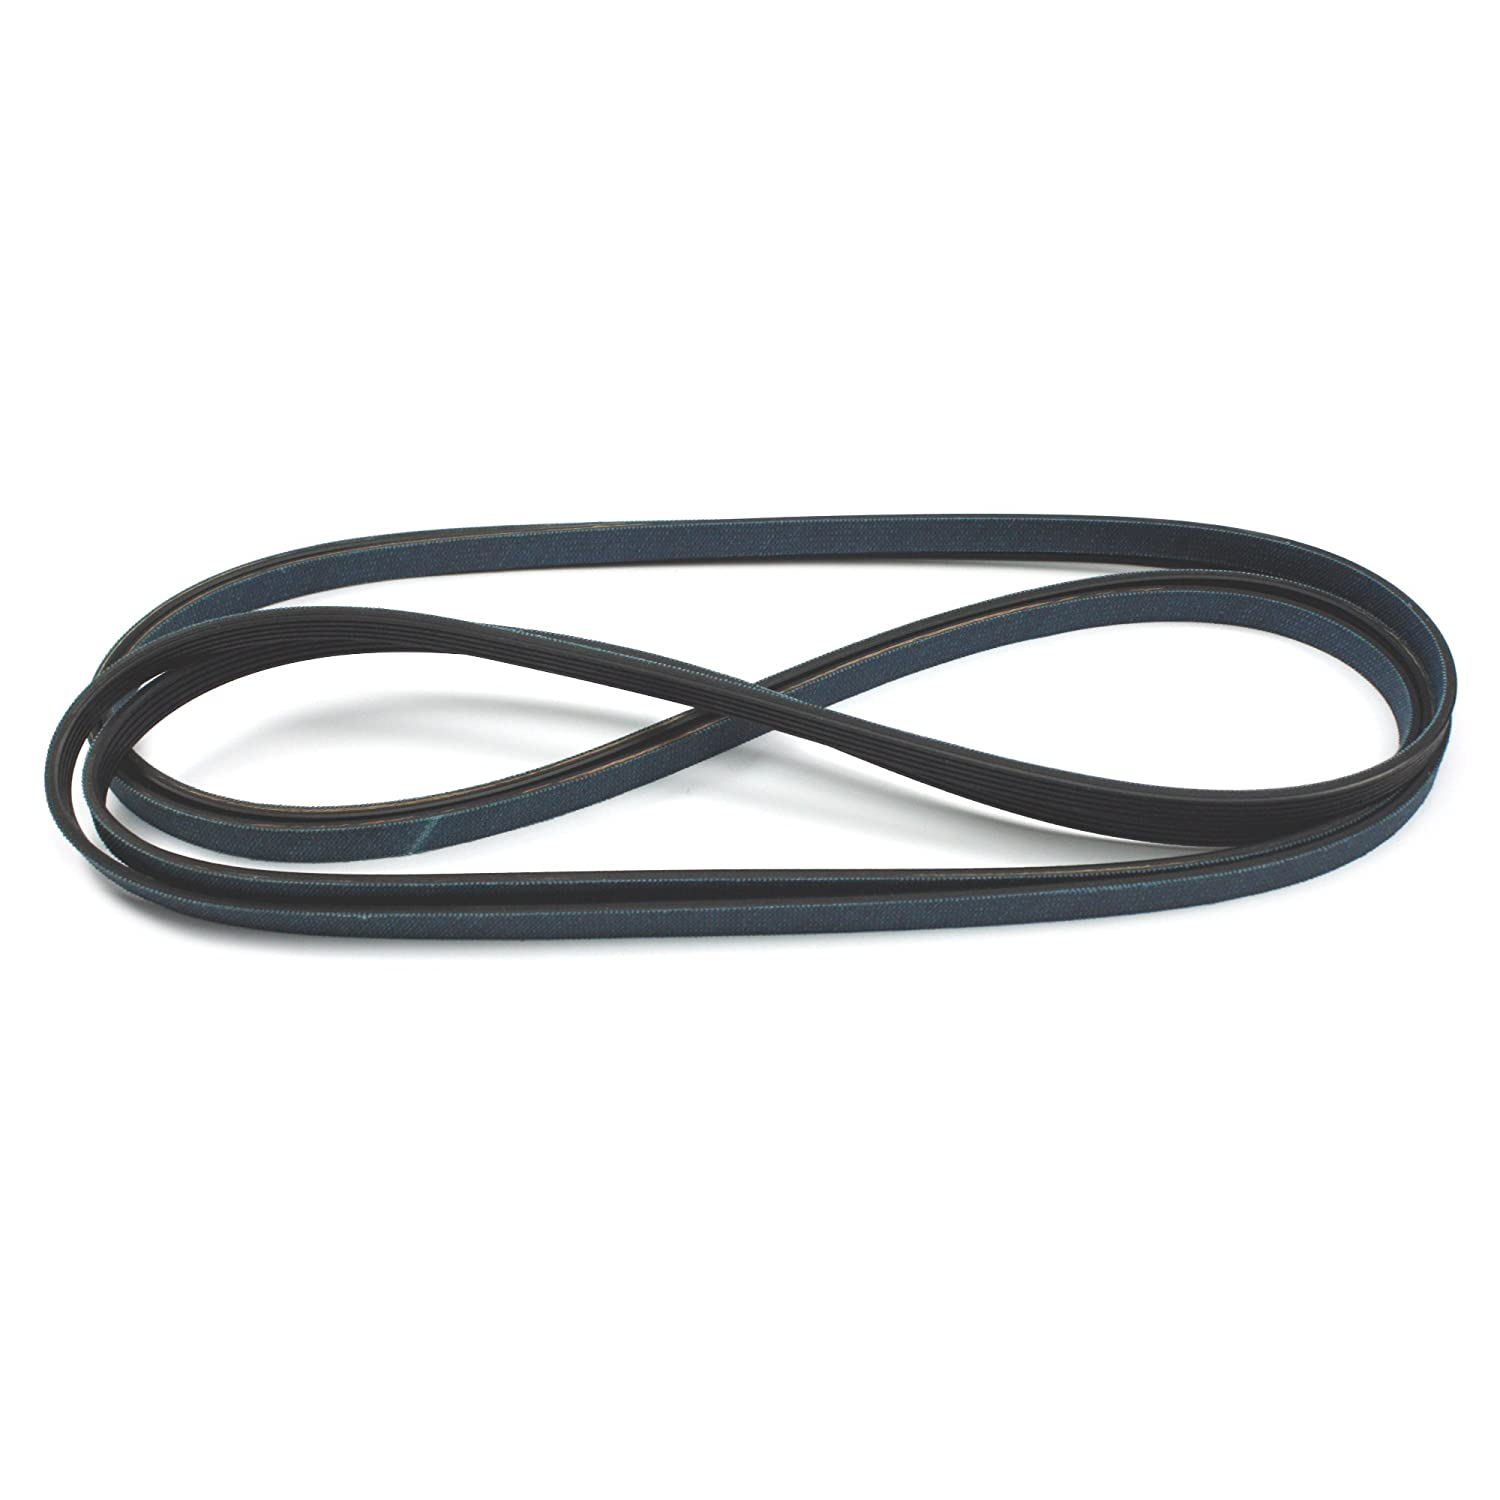 40111201 Dryer Drum Belt Replacement for Whirlpool & Maytag Dryers by PartsBroz - Replaces Part Numbers WP40111201, AP6009126, 14218936, 40051501, 40051502, 59174, PS11742271, R0606549, WP40111201VP